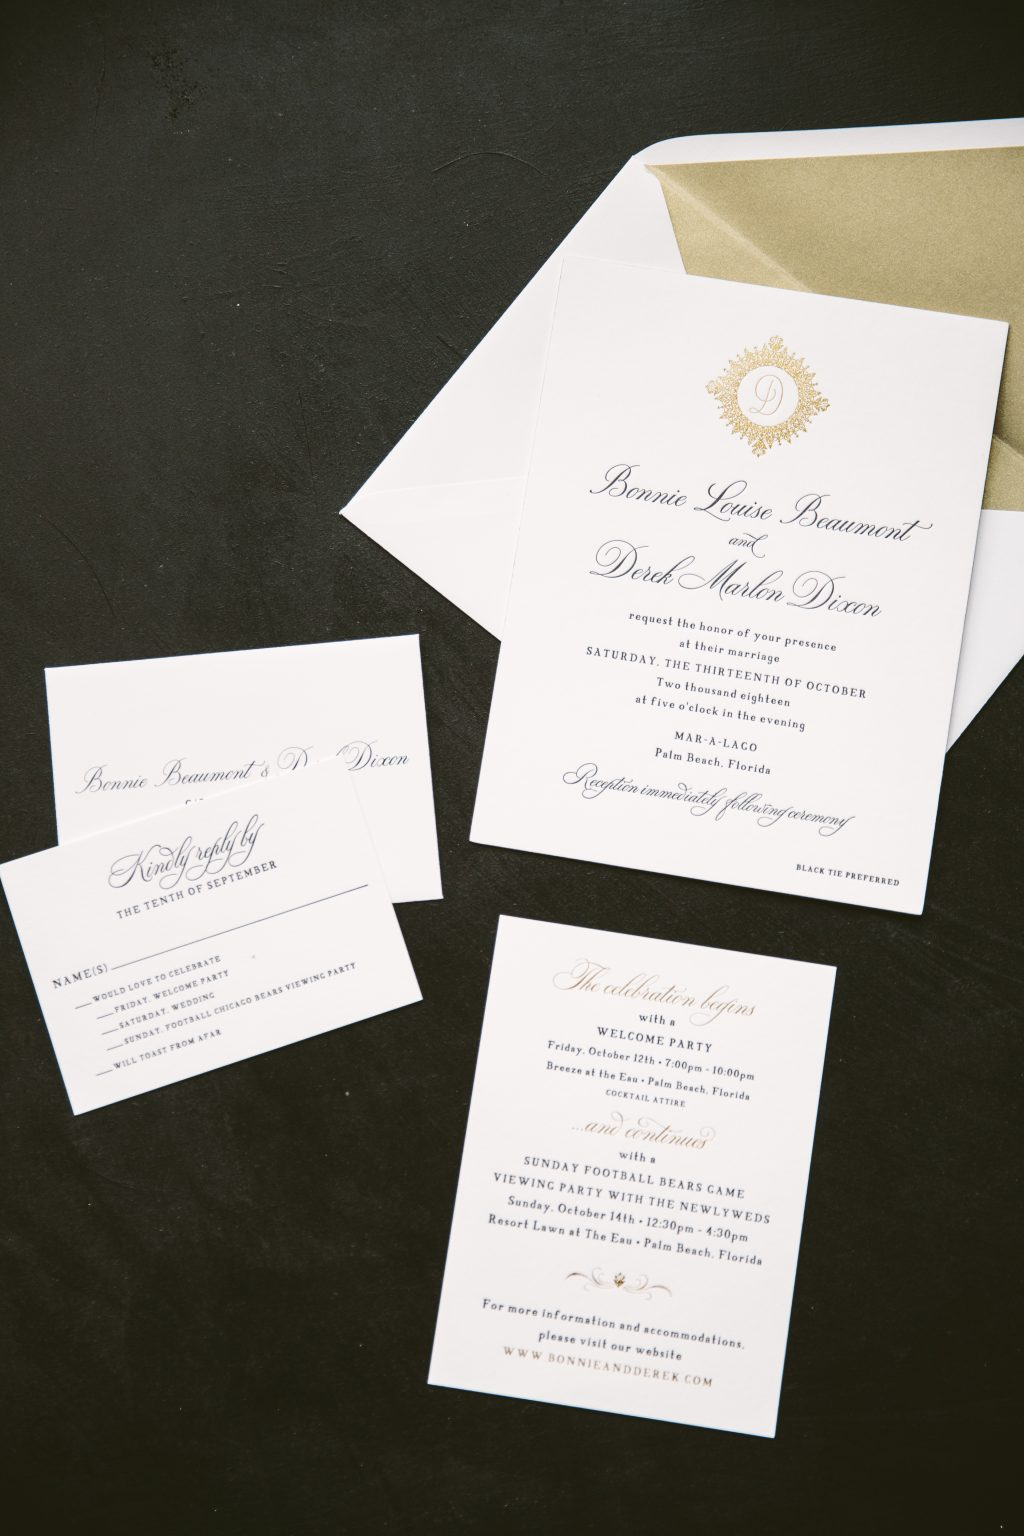 Black letterpress invitations with gold foil accents